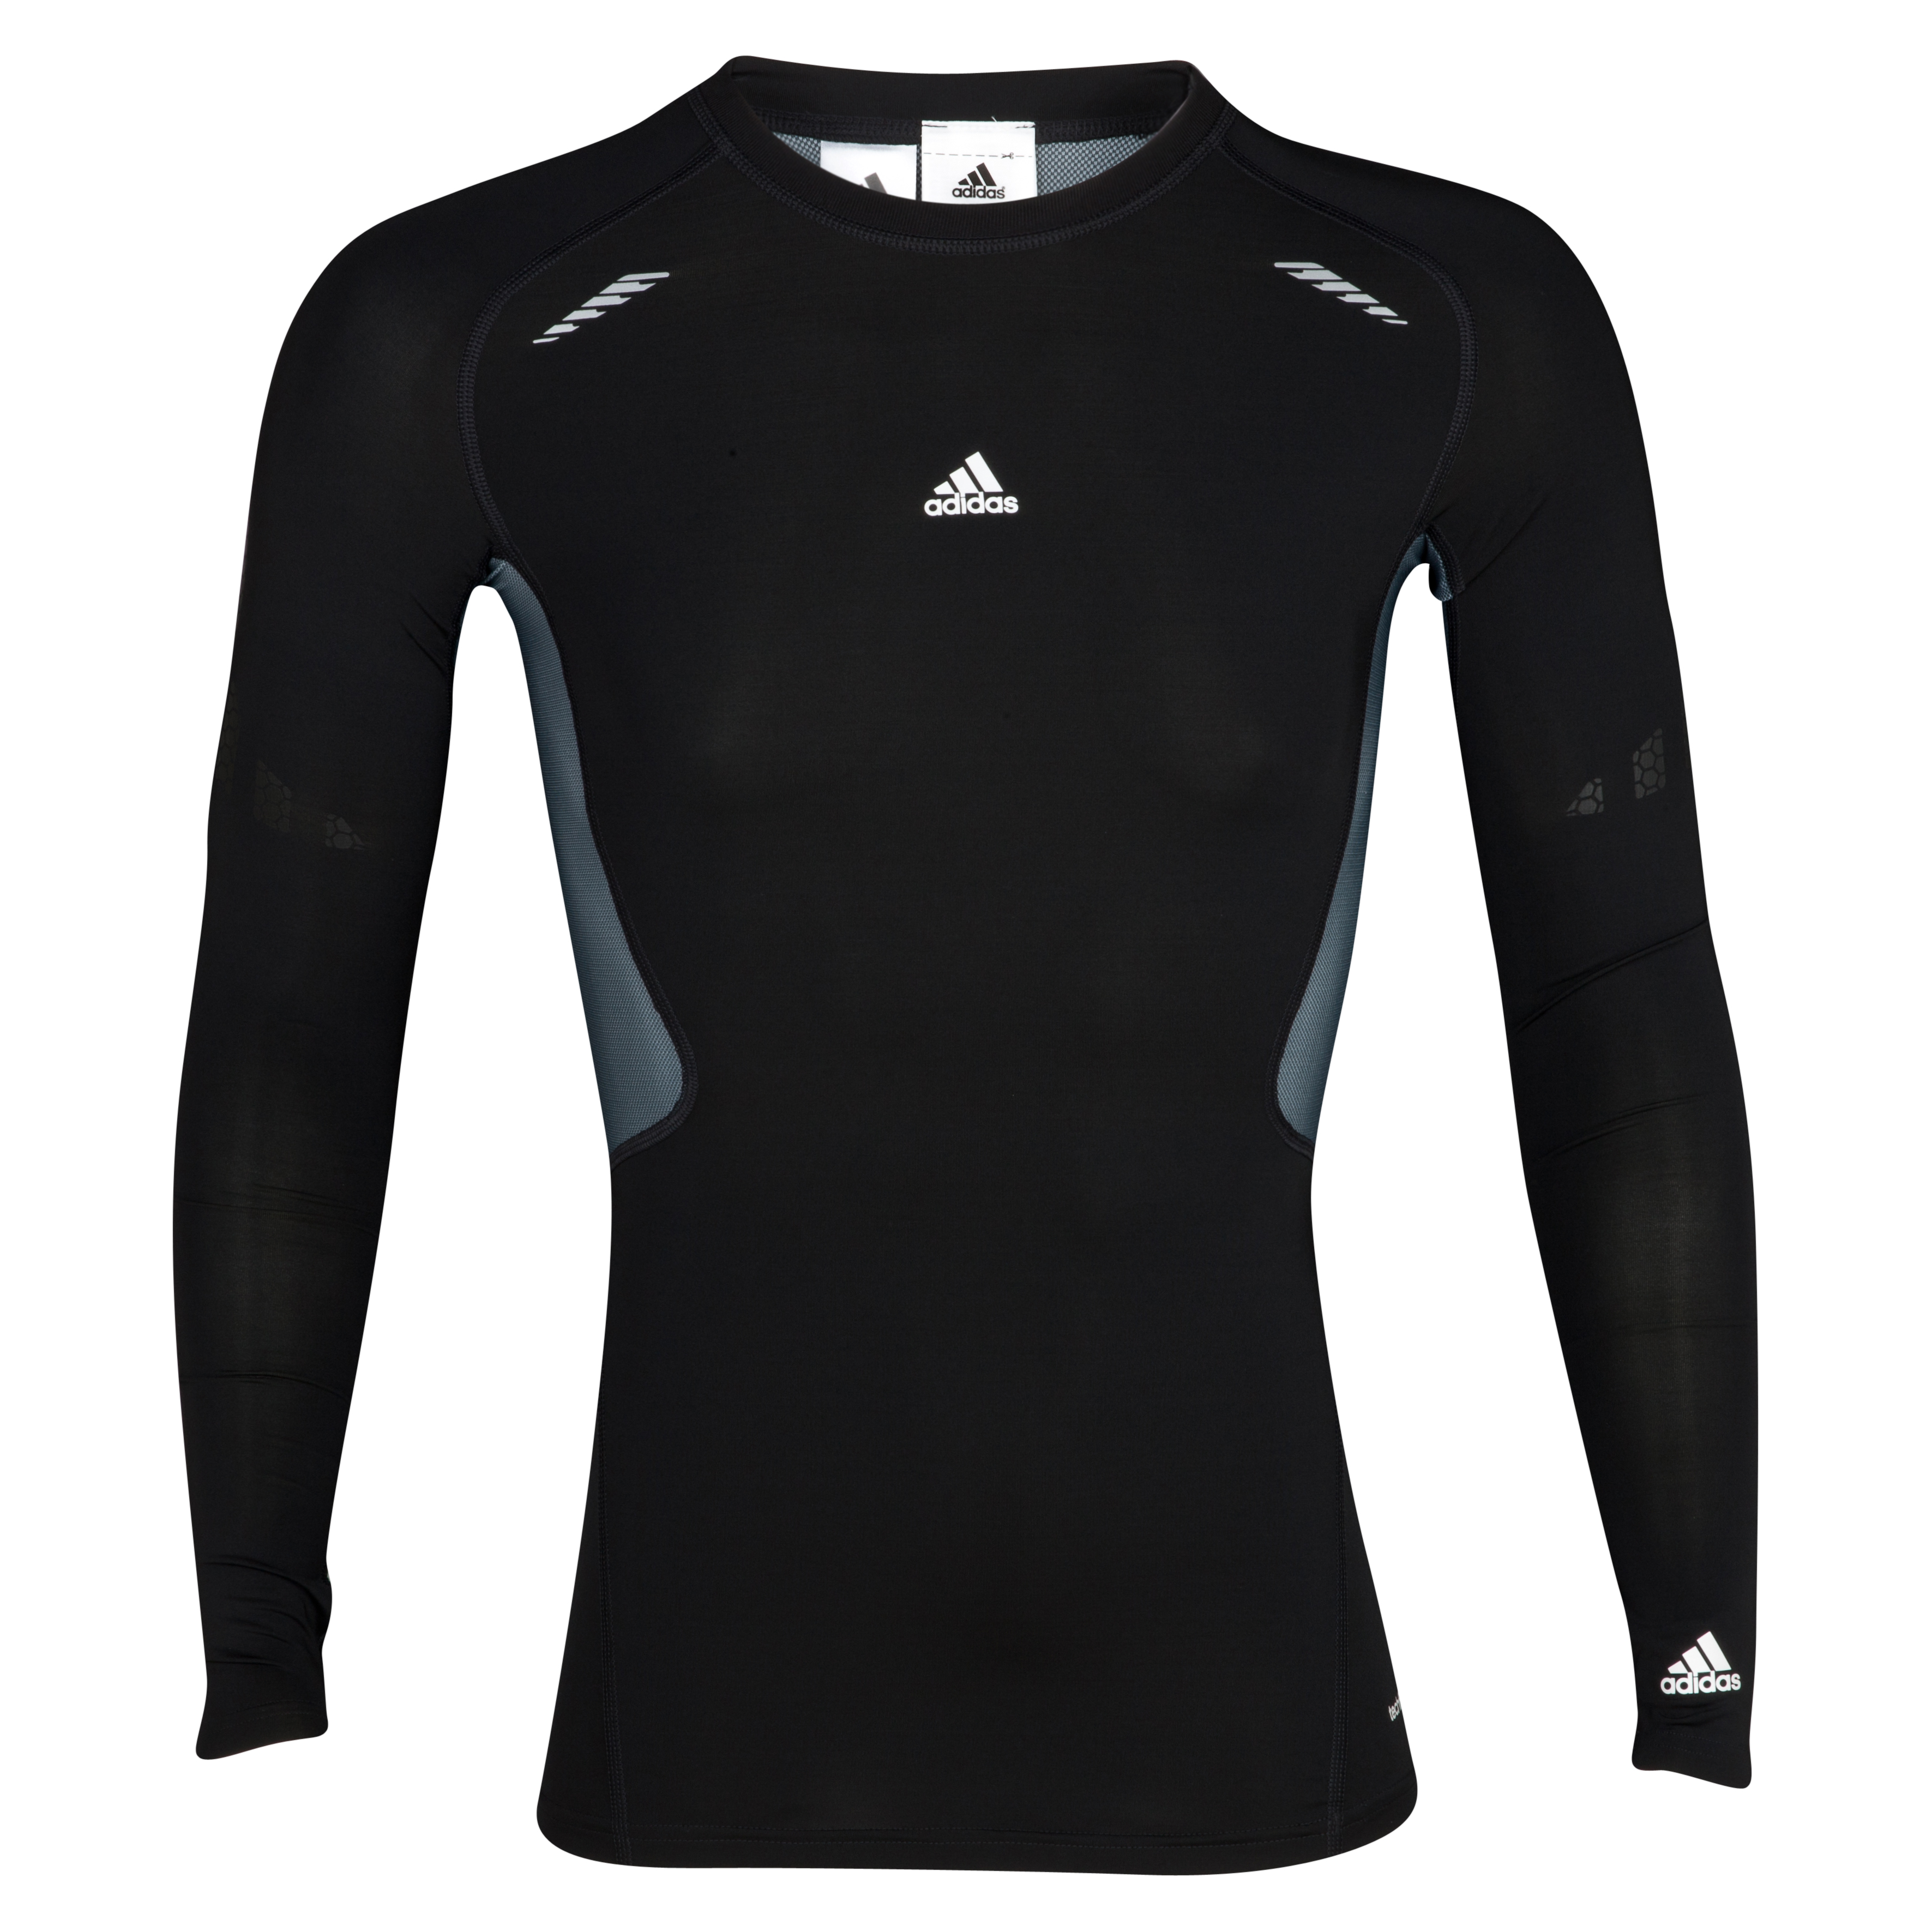 Camiseta interior TechFit Preperation adidas - Manga larga - Negro